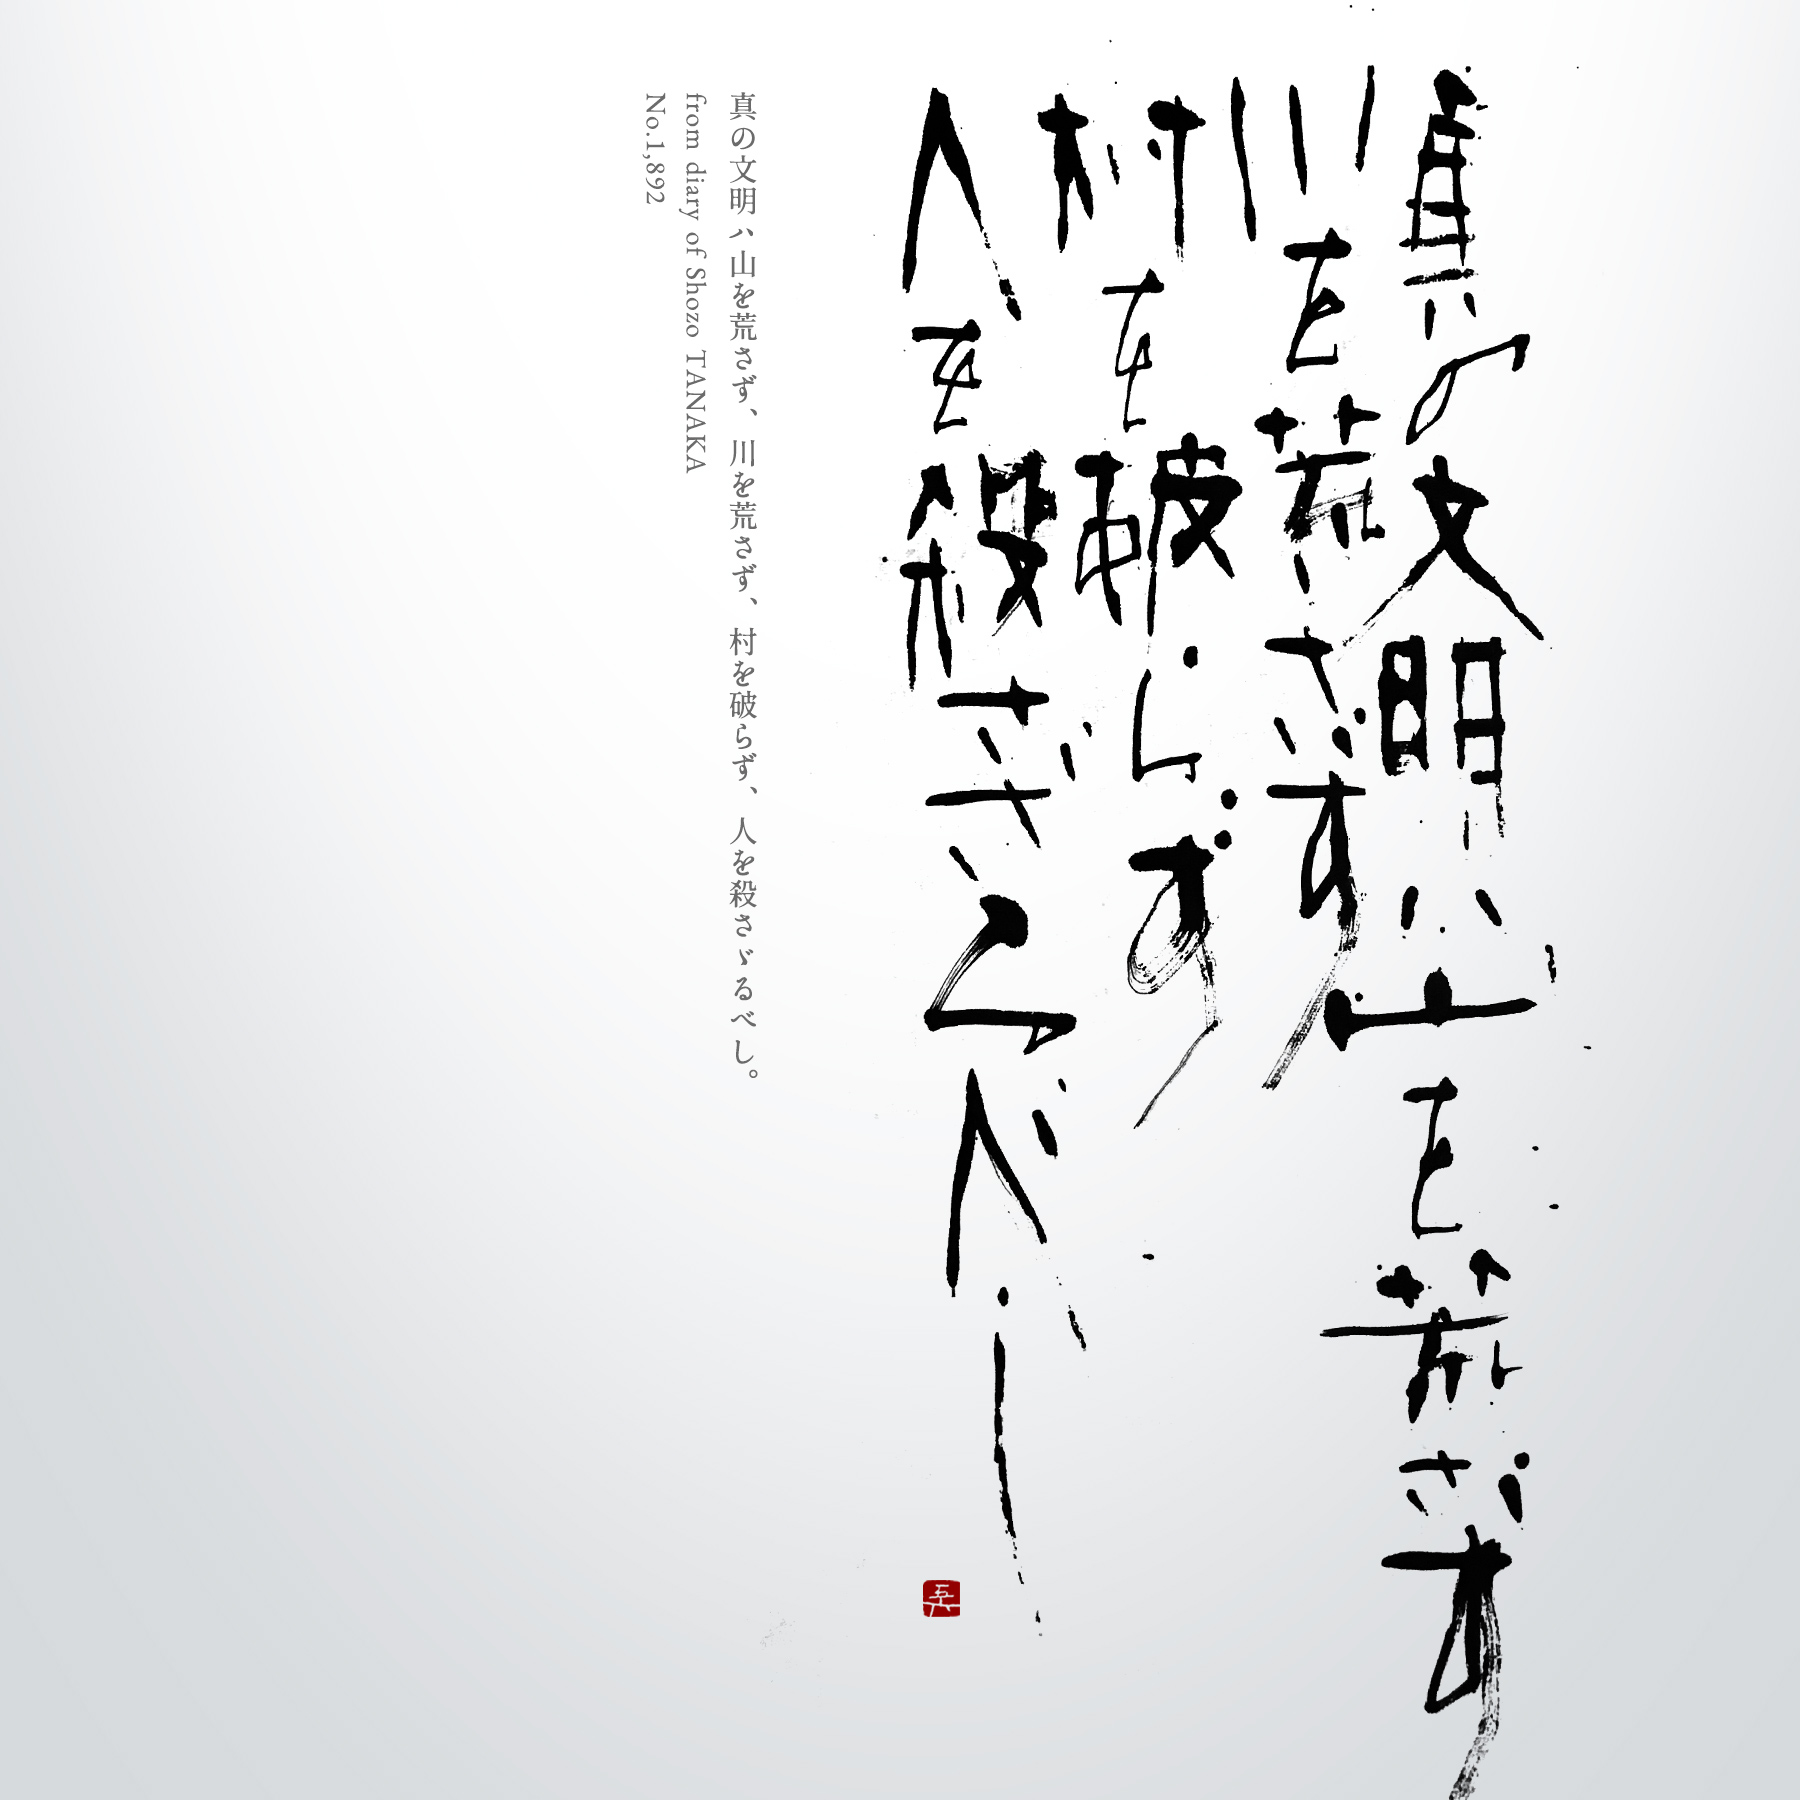 真の文明ハ | from diary of Shozo TANAKA 書道作品 japaneseart japanese calligraphy 書家 田川悟郎 Goroh Tagawa